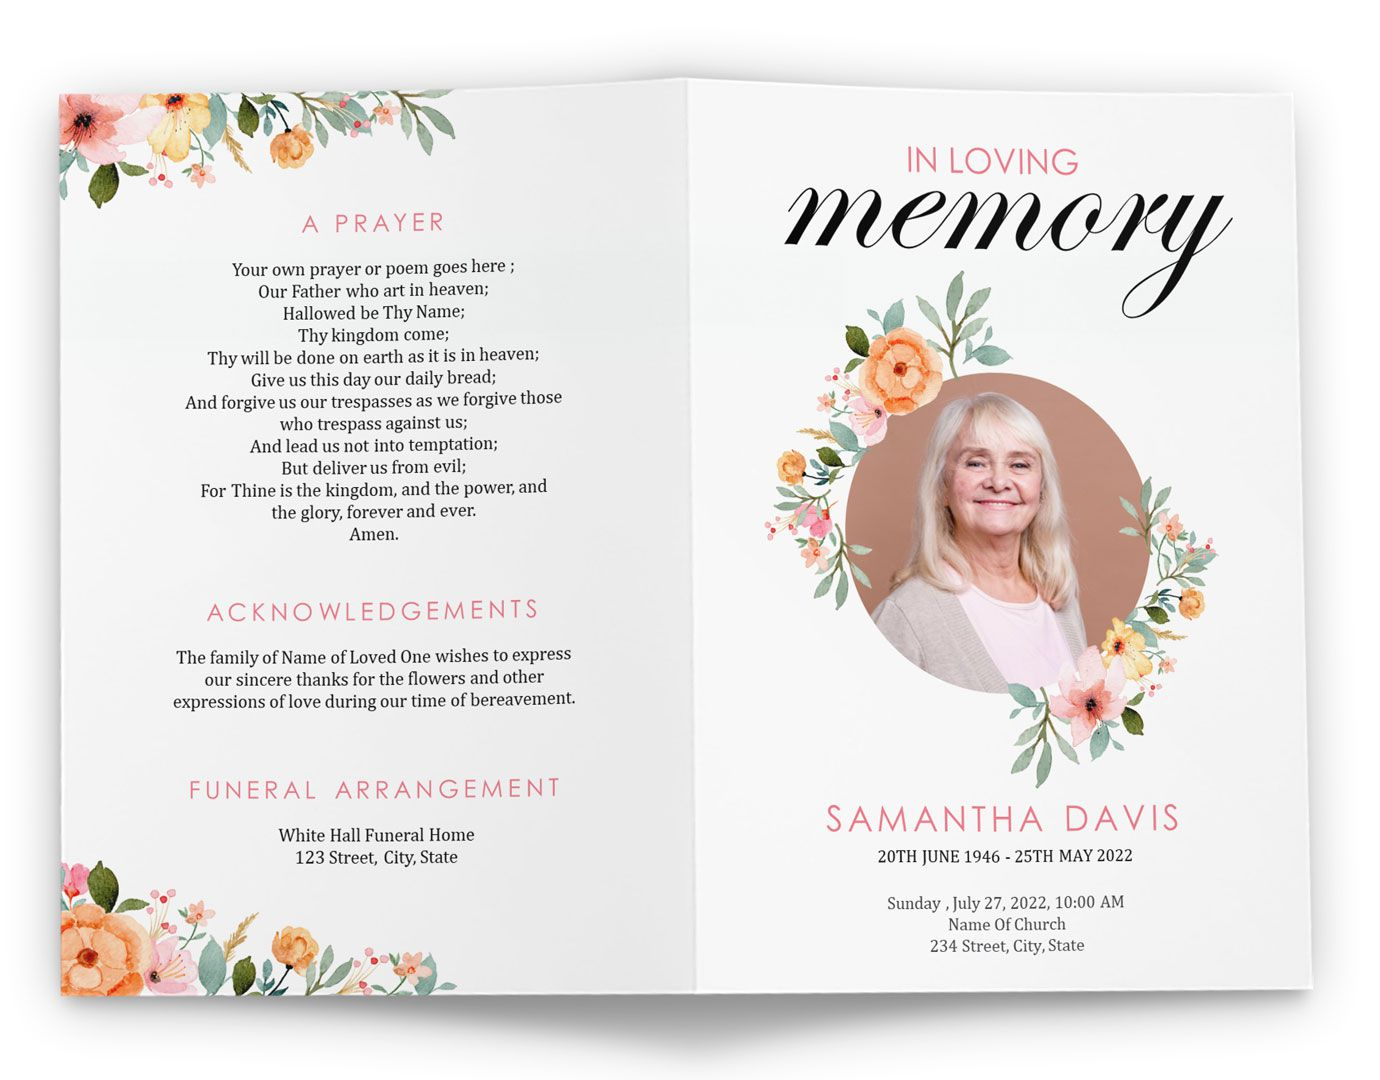 004 Fascinating Free Celebration Of Life Brochure Template Picture  FlyerFull